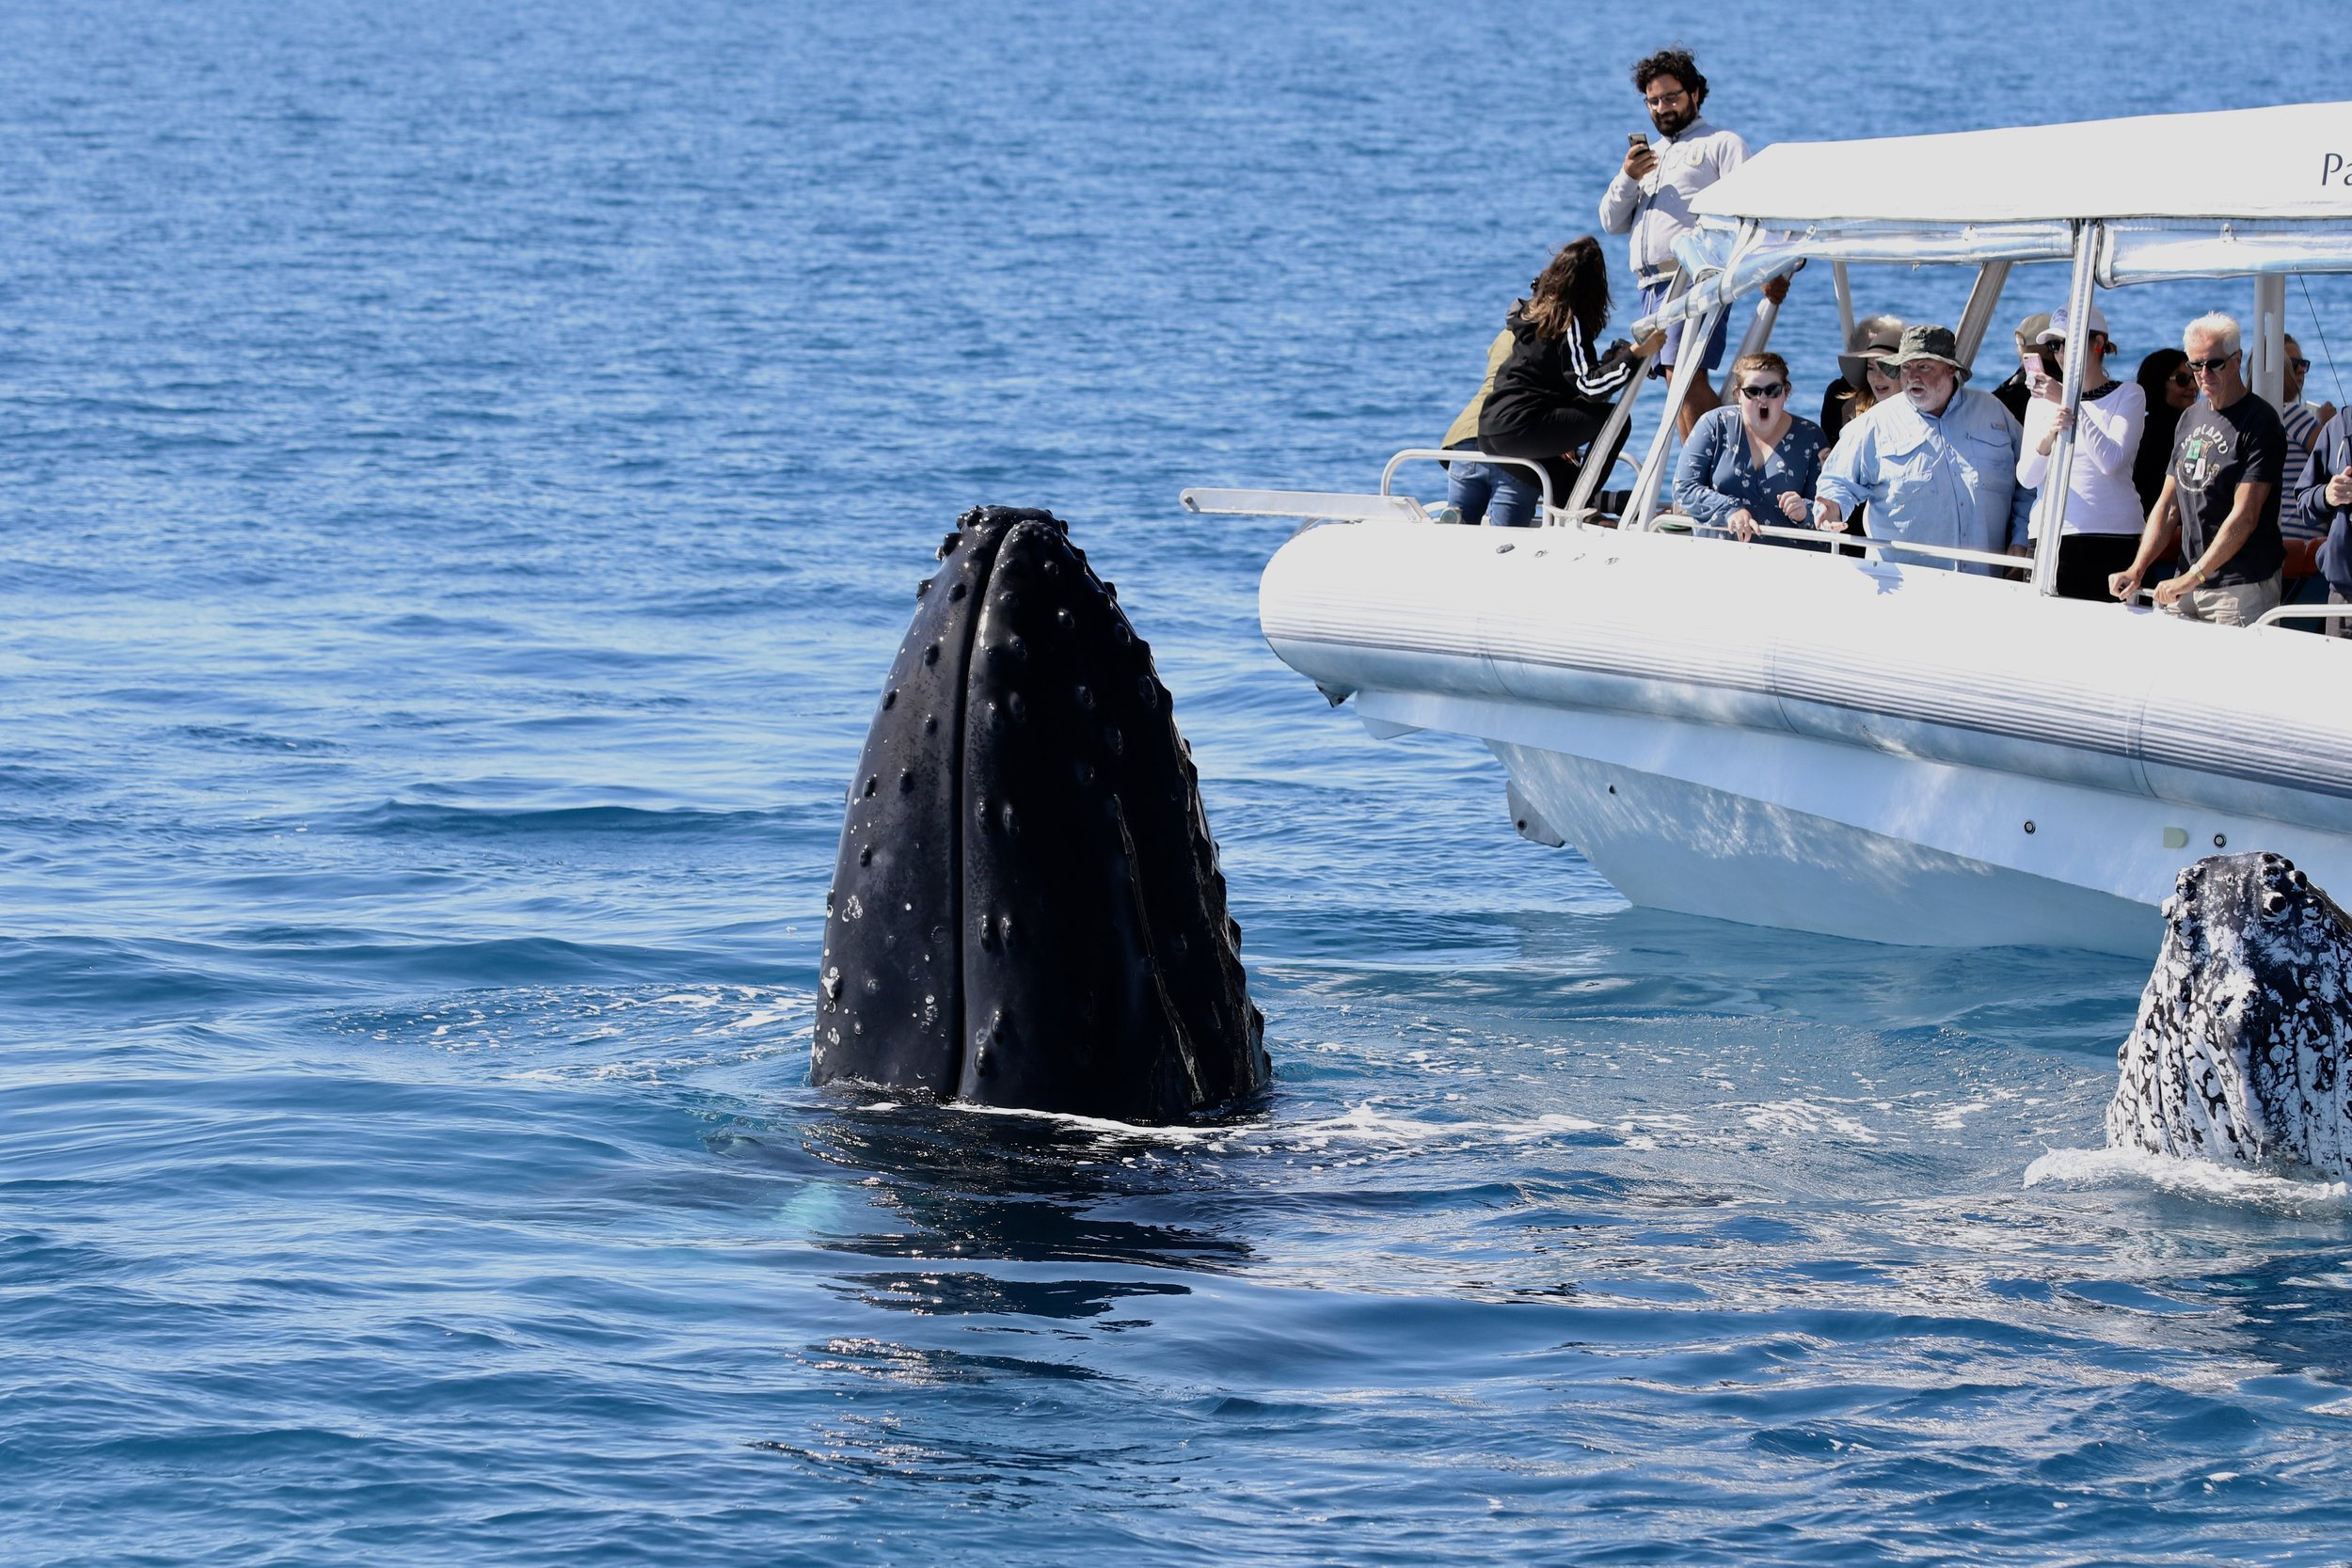 Sustainable Whale-watching